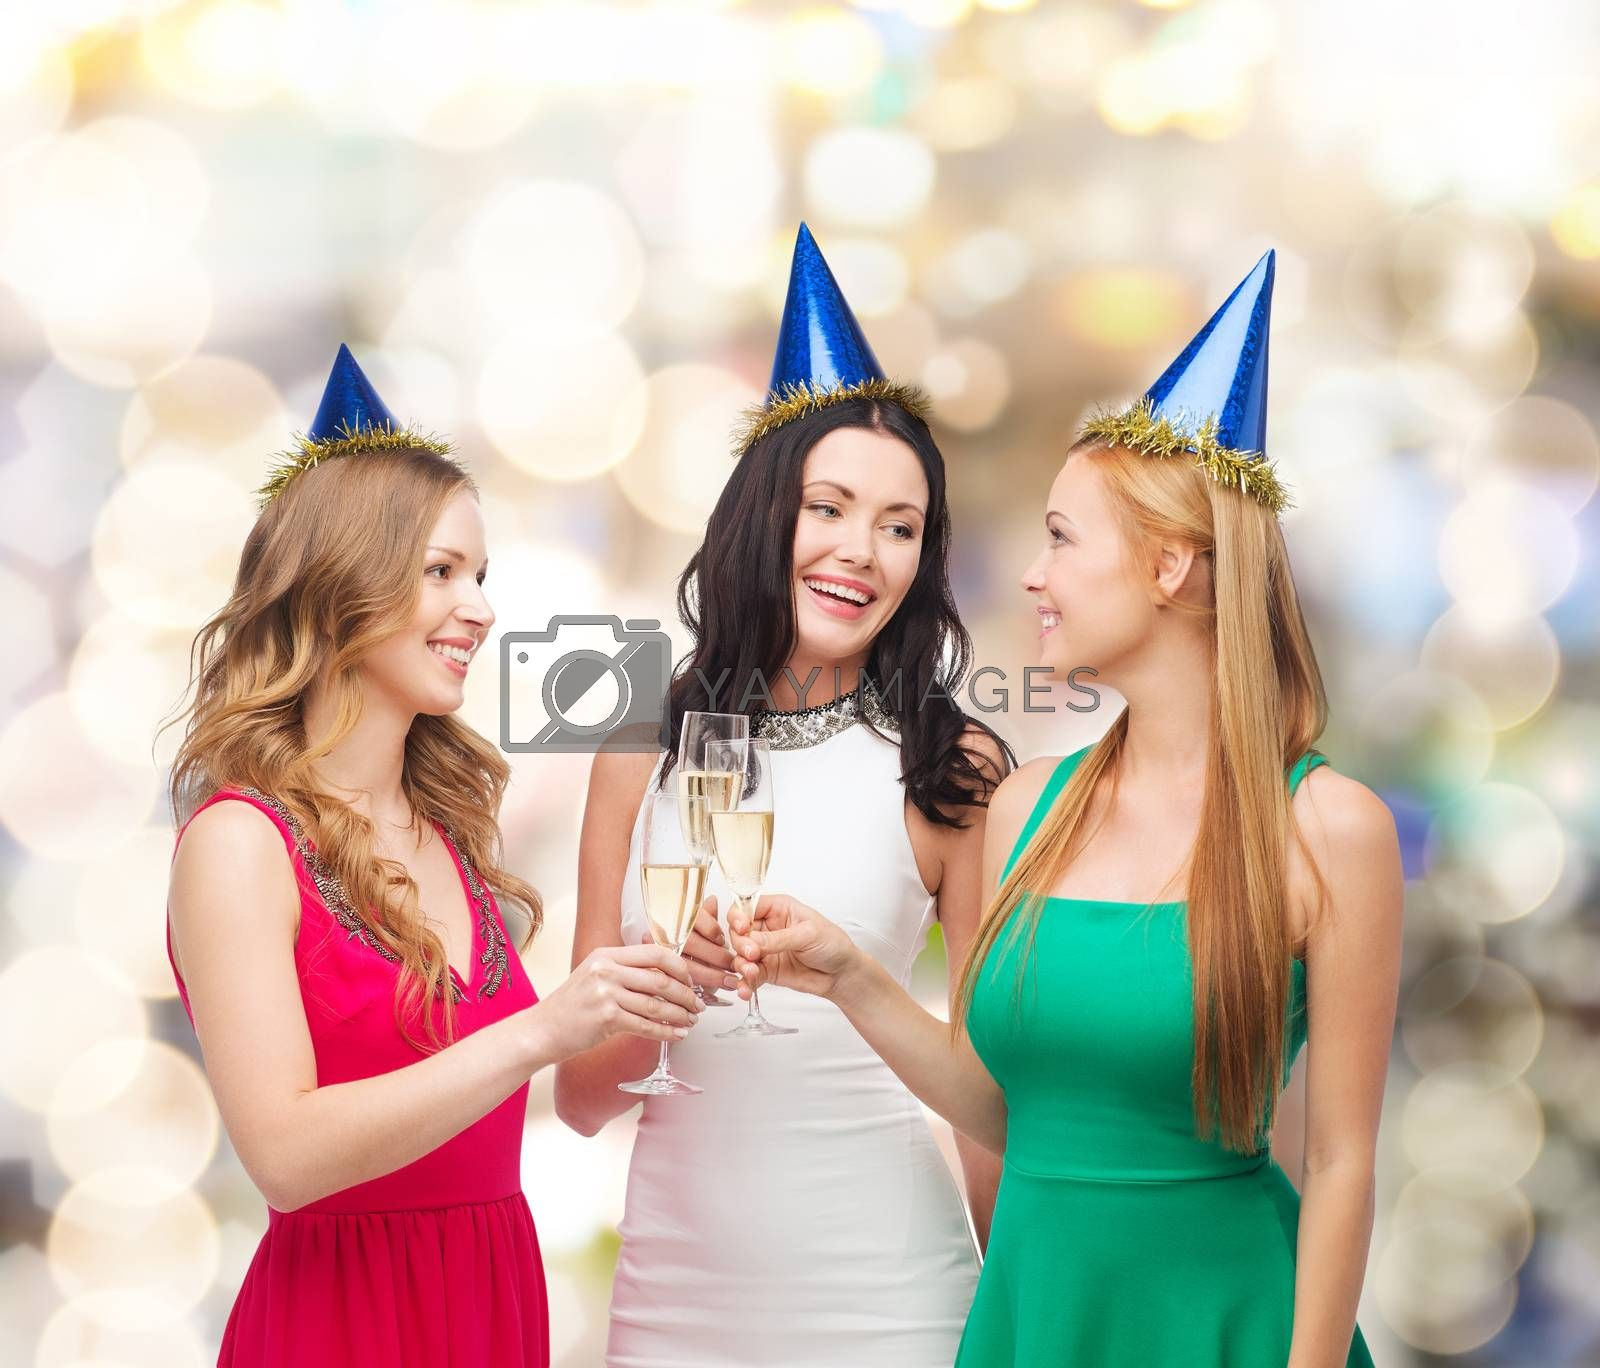 drinks, holidays, people and celebration concept - smiling women in party hats with glasses of sparkling wine over lights background